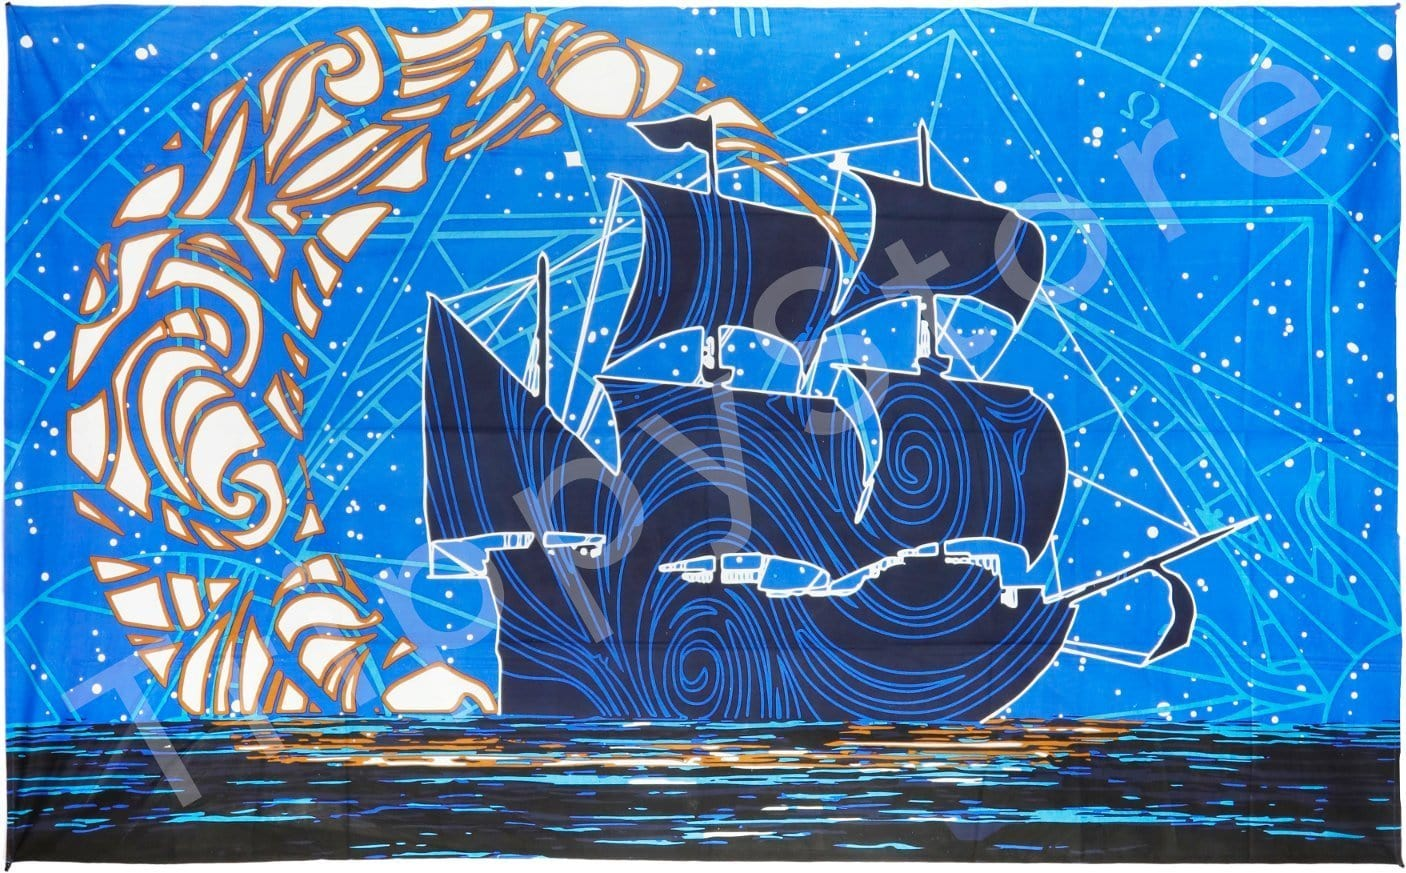 Tapestries 3D - Glow in the Dark - Moon Ship - Tapestry 013330